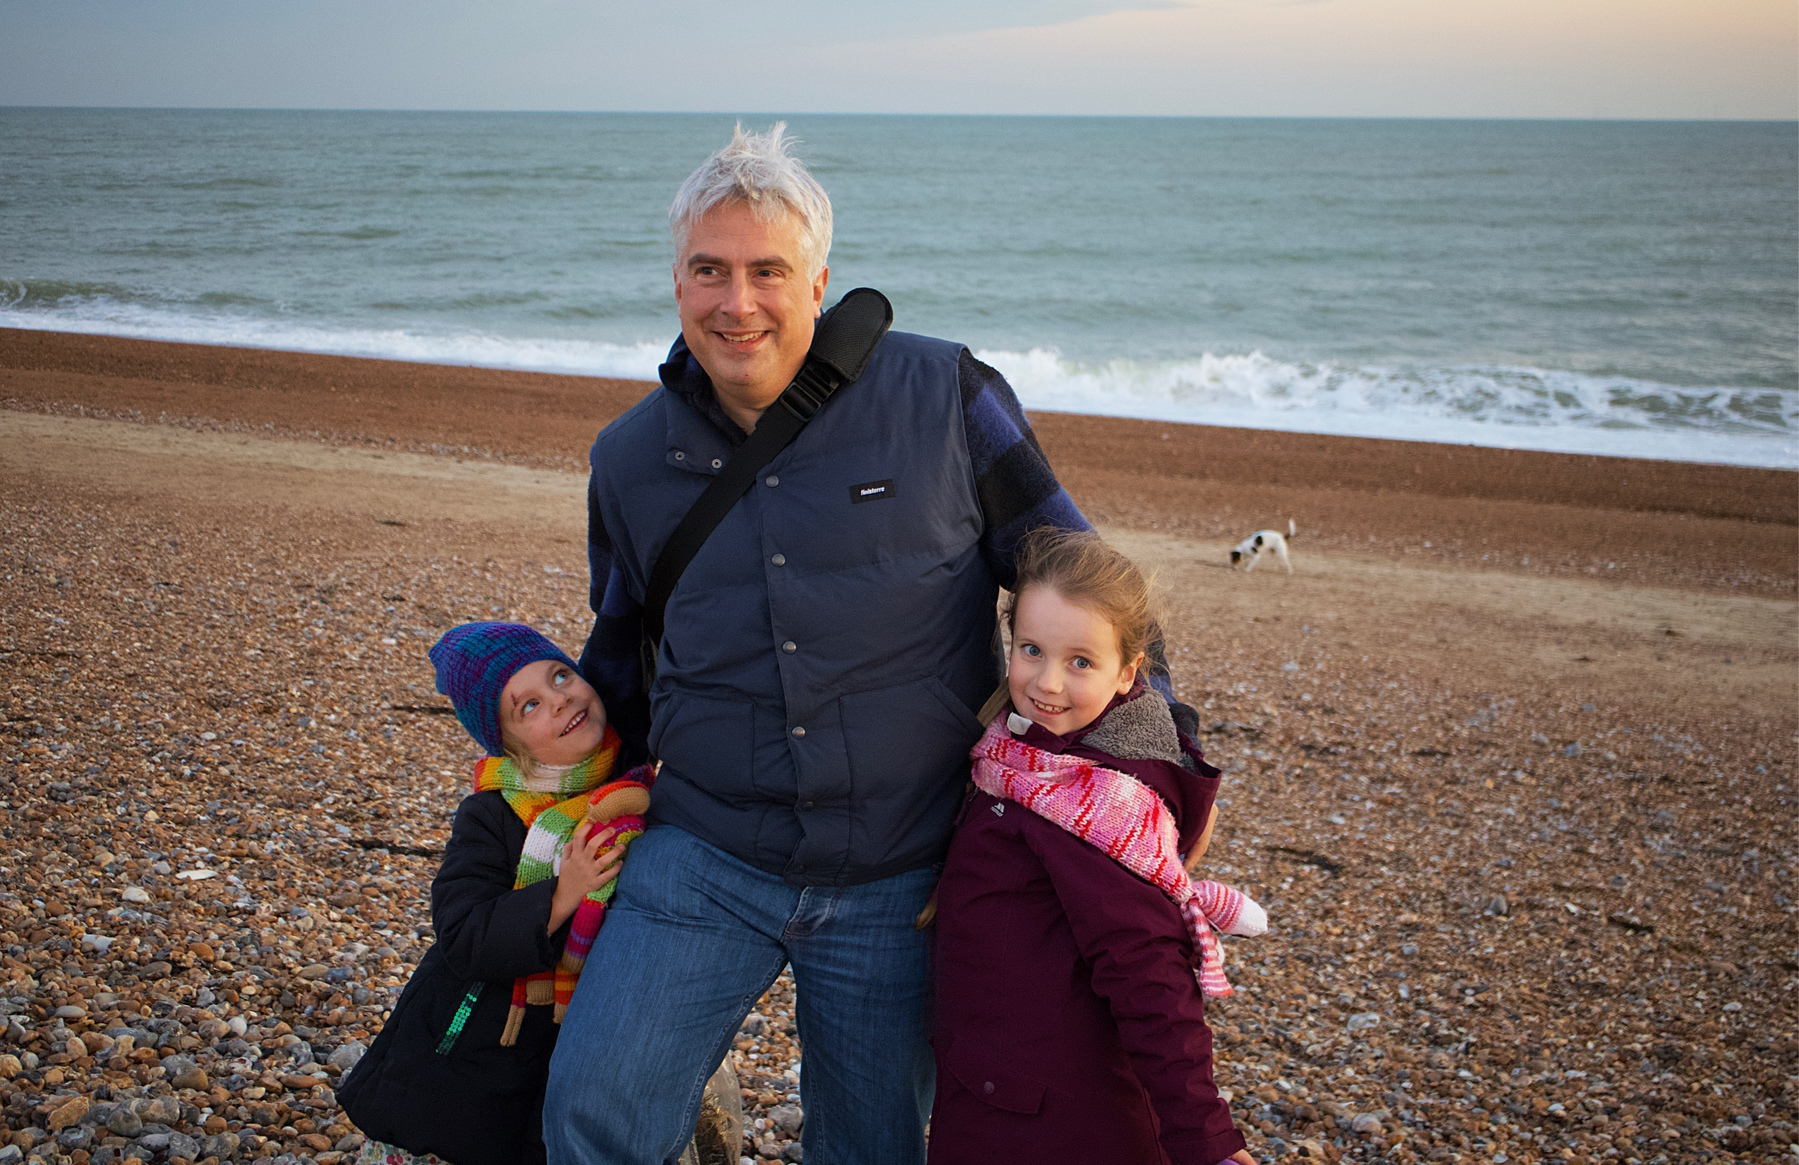 The Tinworth family on Shoreham Beach.